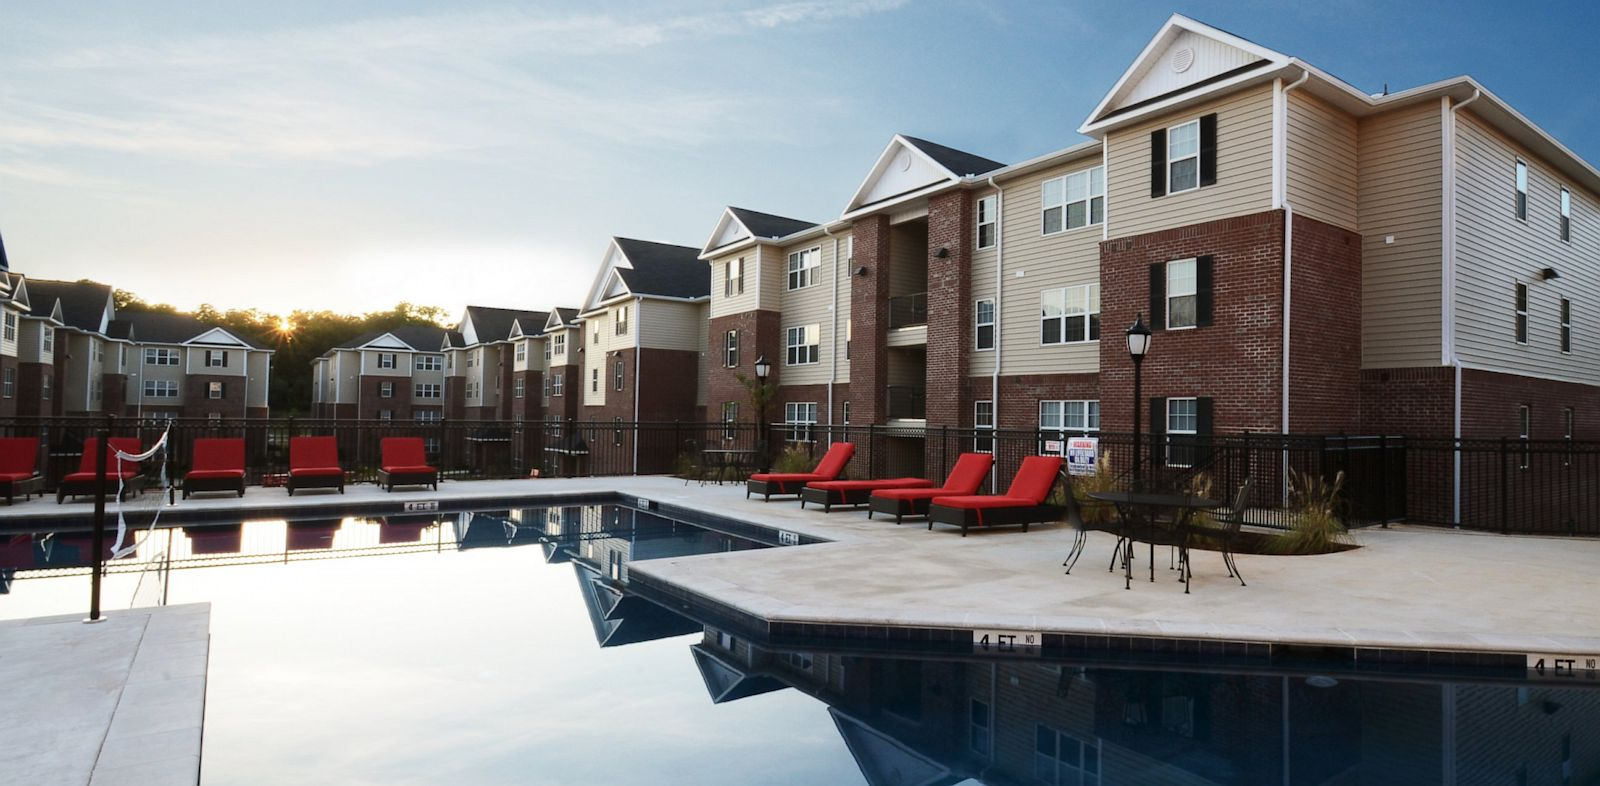 PHOTO: The pool at The Grove, an off-campus complex developed by Campus Crest for Auburn University in Auburn, Alabama.